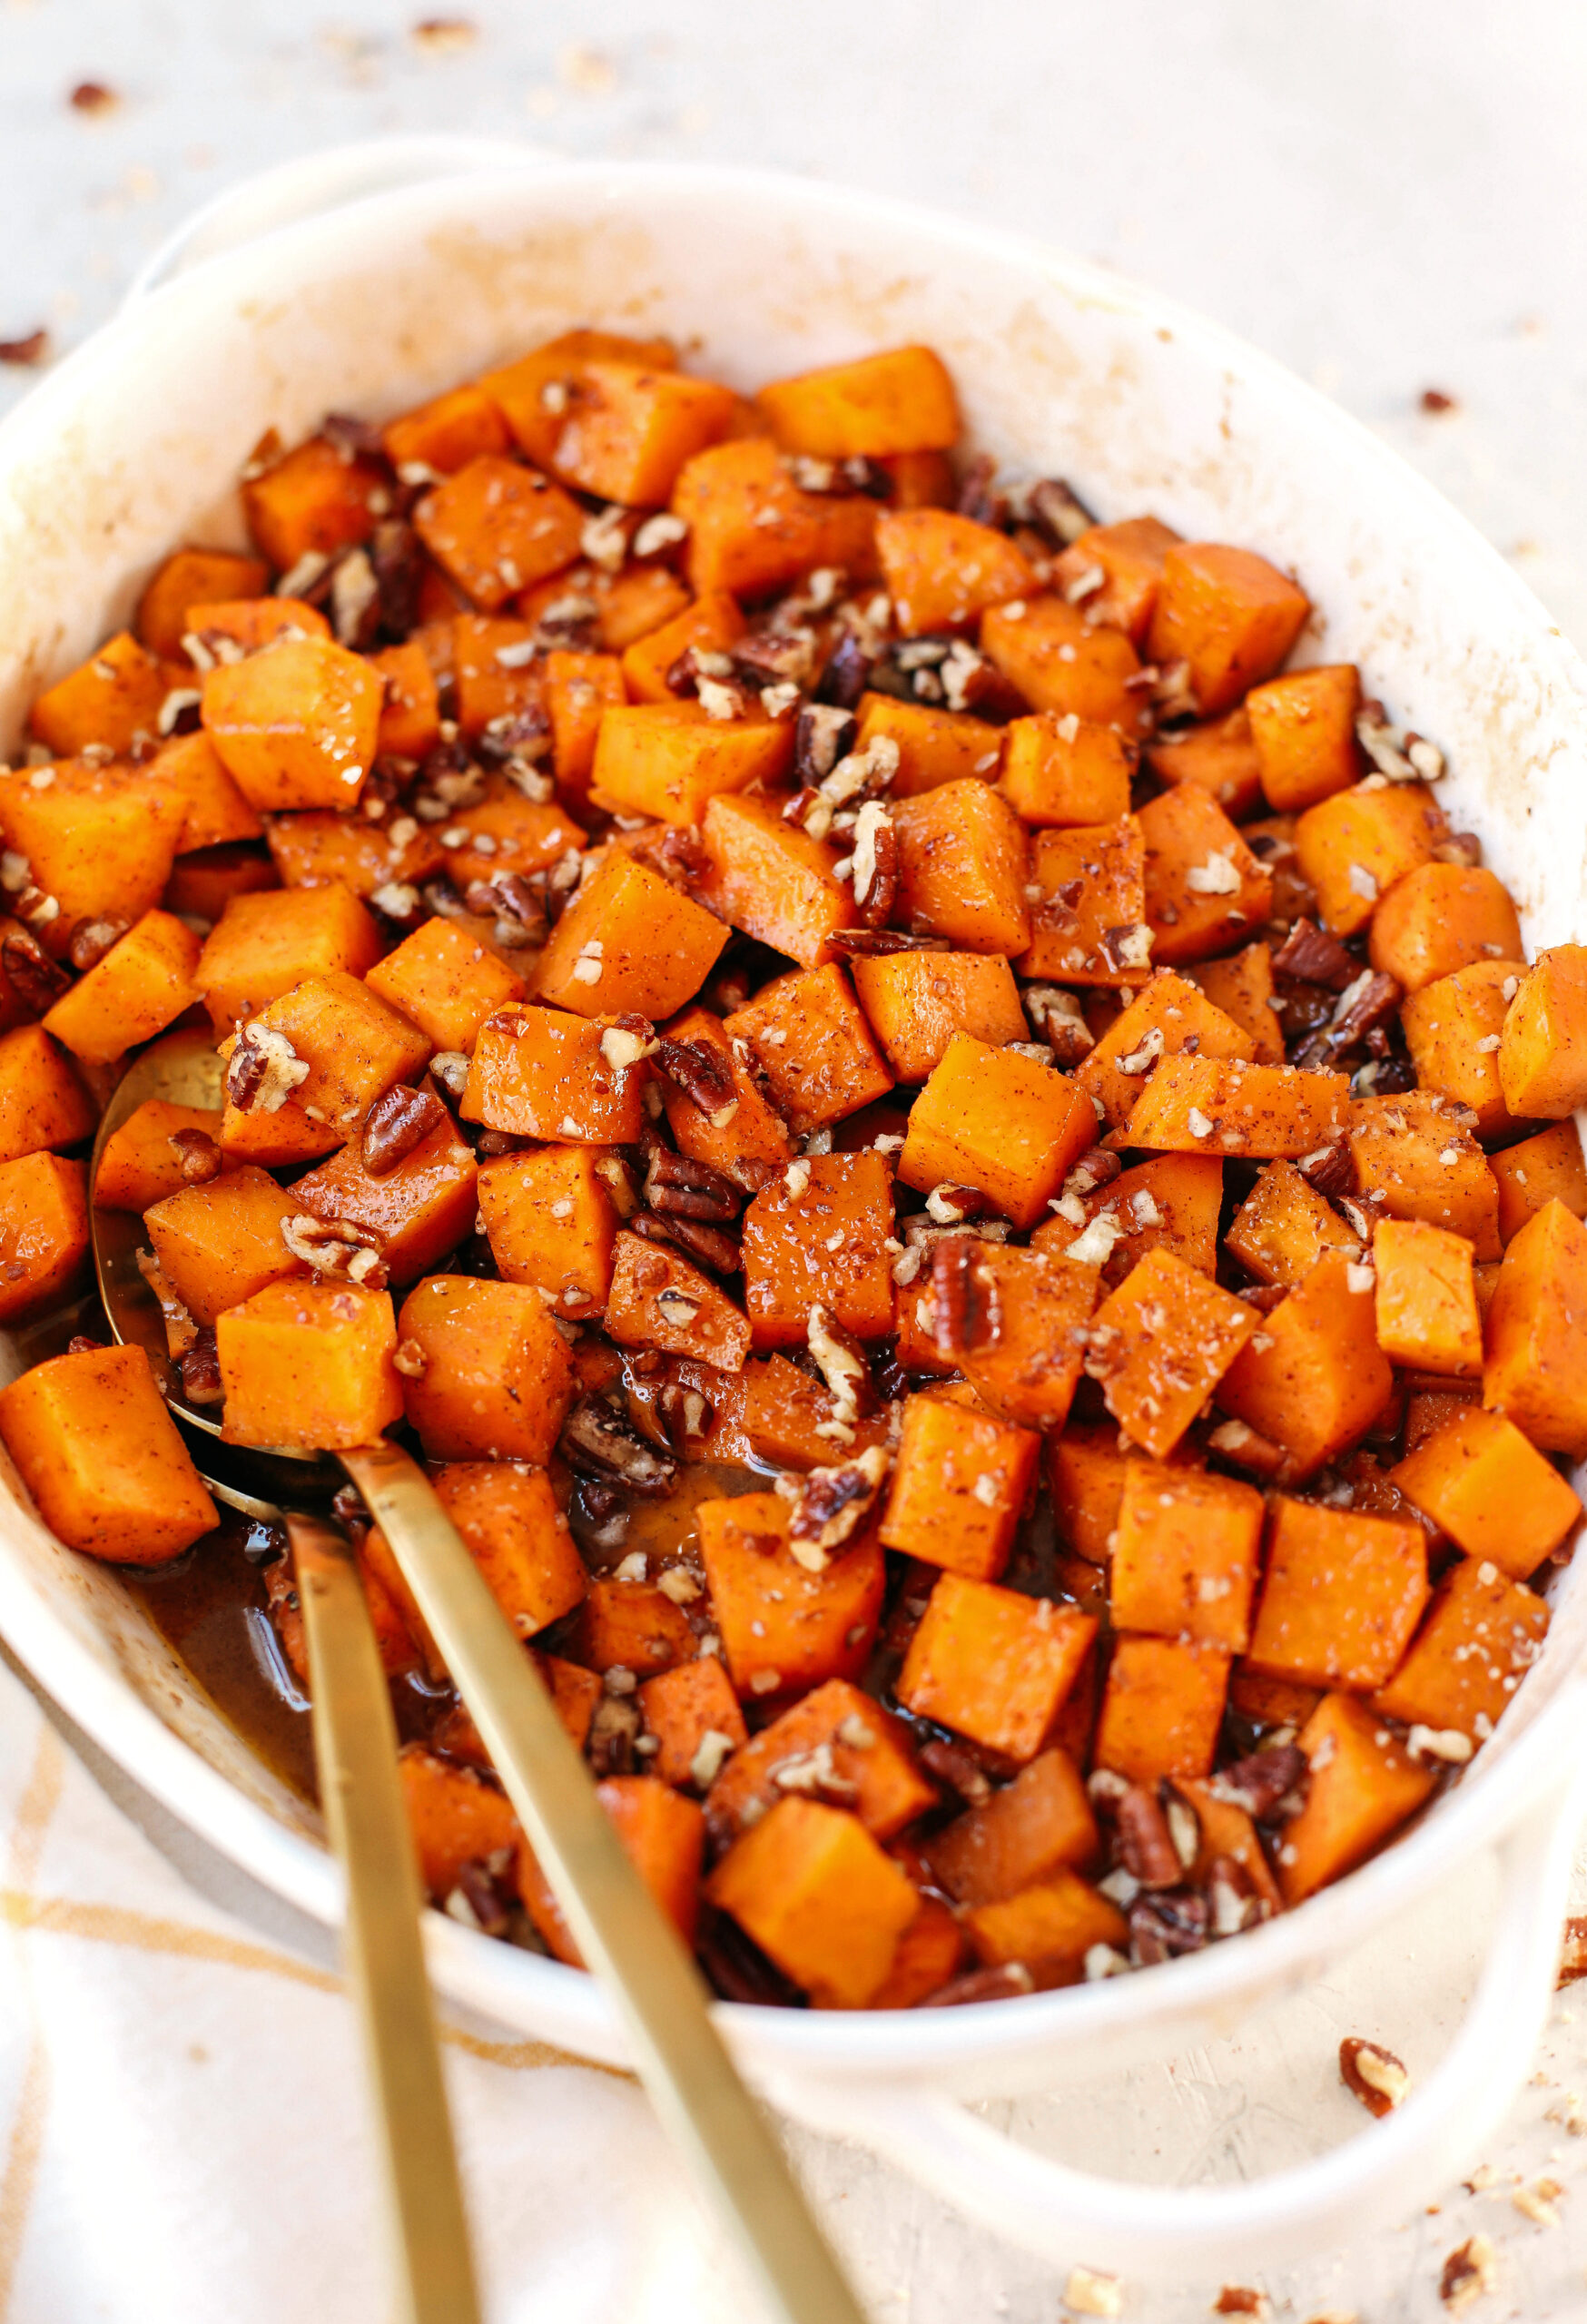 These Bourbon Maple Pecan Sweet Potatoes are one of my favorite holiday side dishes coated in the most delicious maple cinnamon glaze that will keep you coming back for seconds!